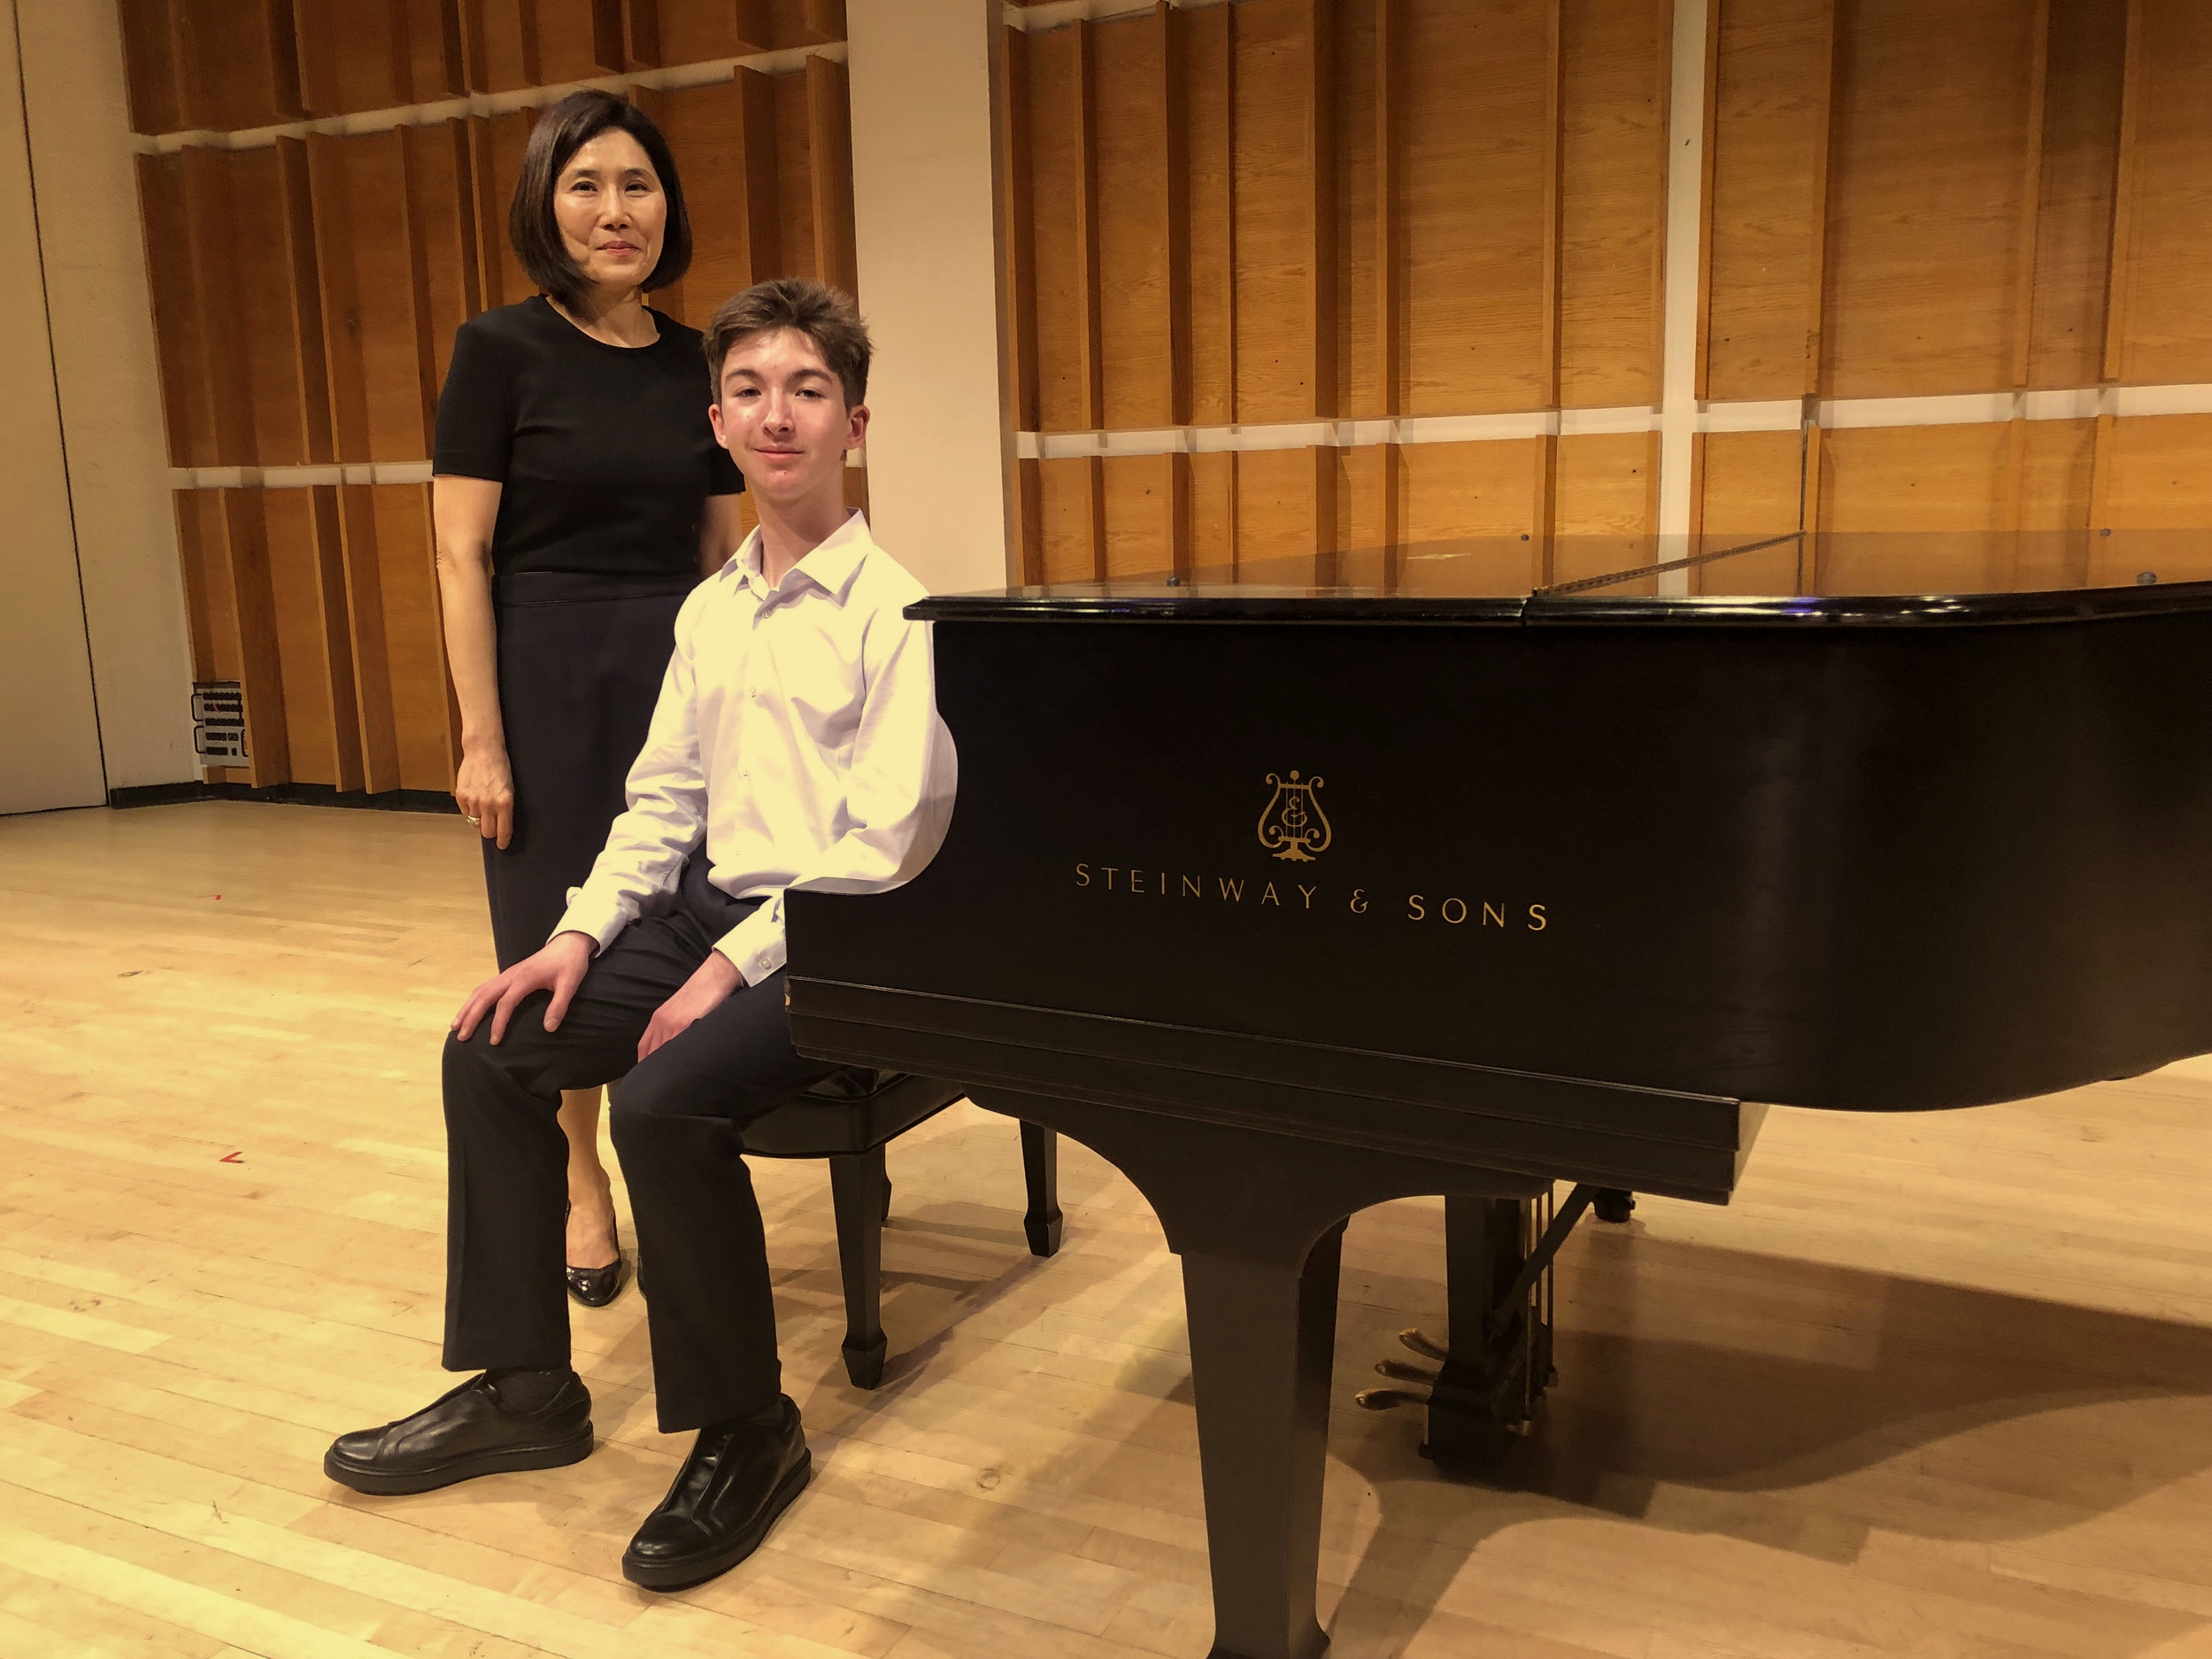 Sebastian on stage with Dr. Rosa Parks at the International Grande Music Competition